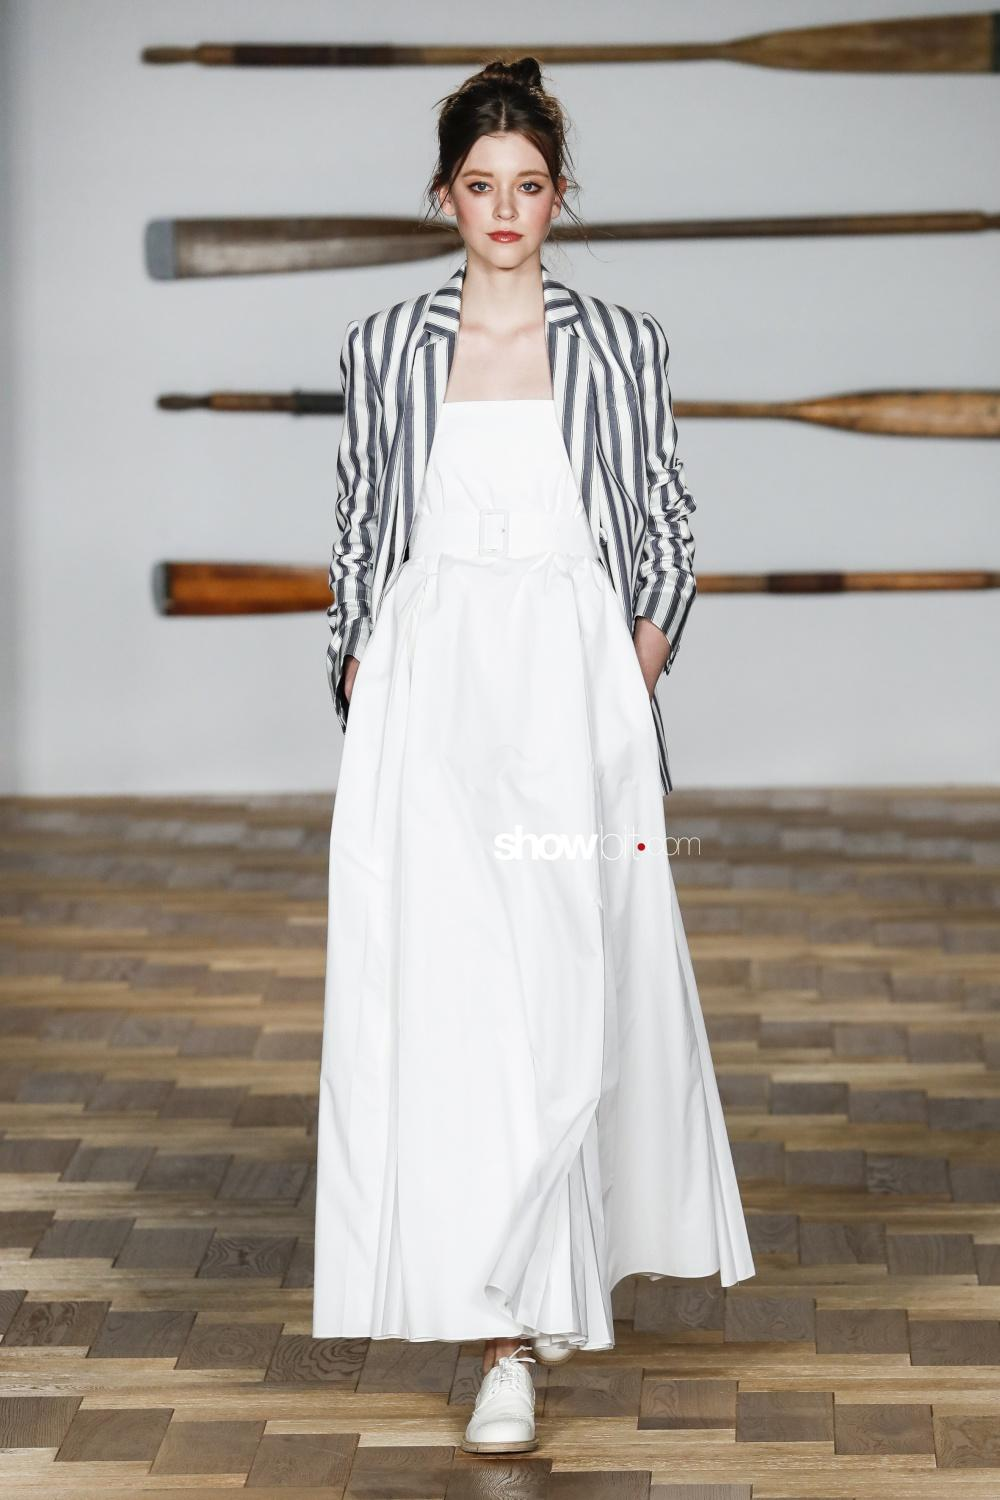 Long Sleeve Summer Dresses In Fashion Week Collections